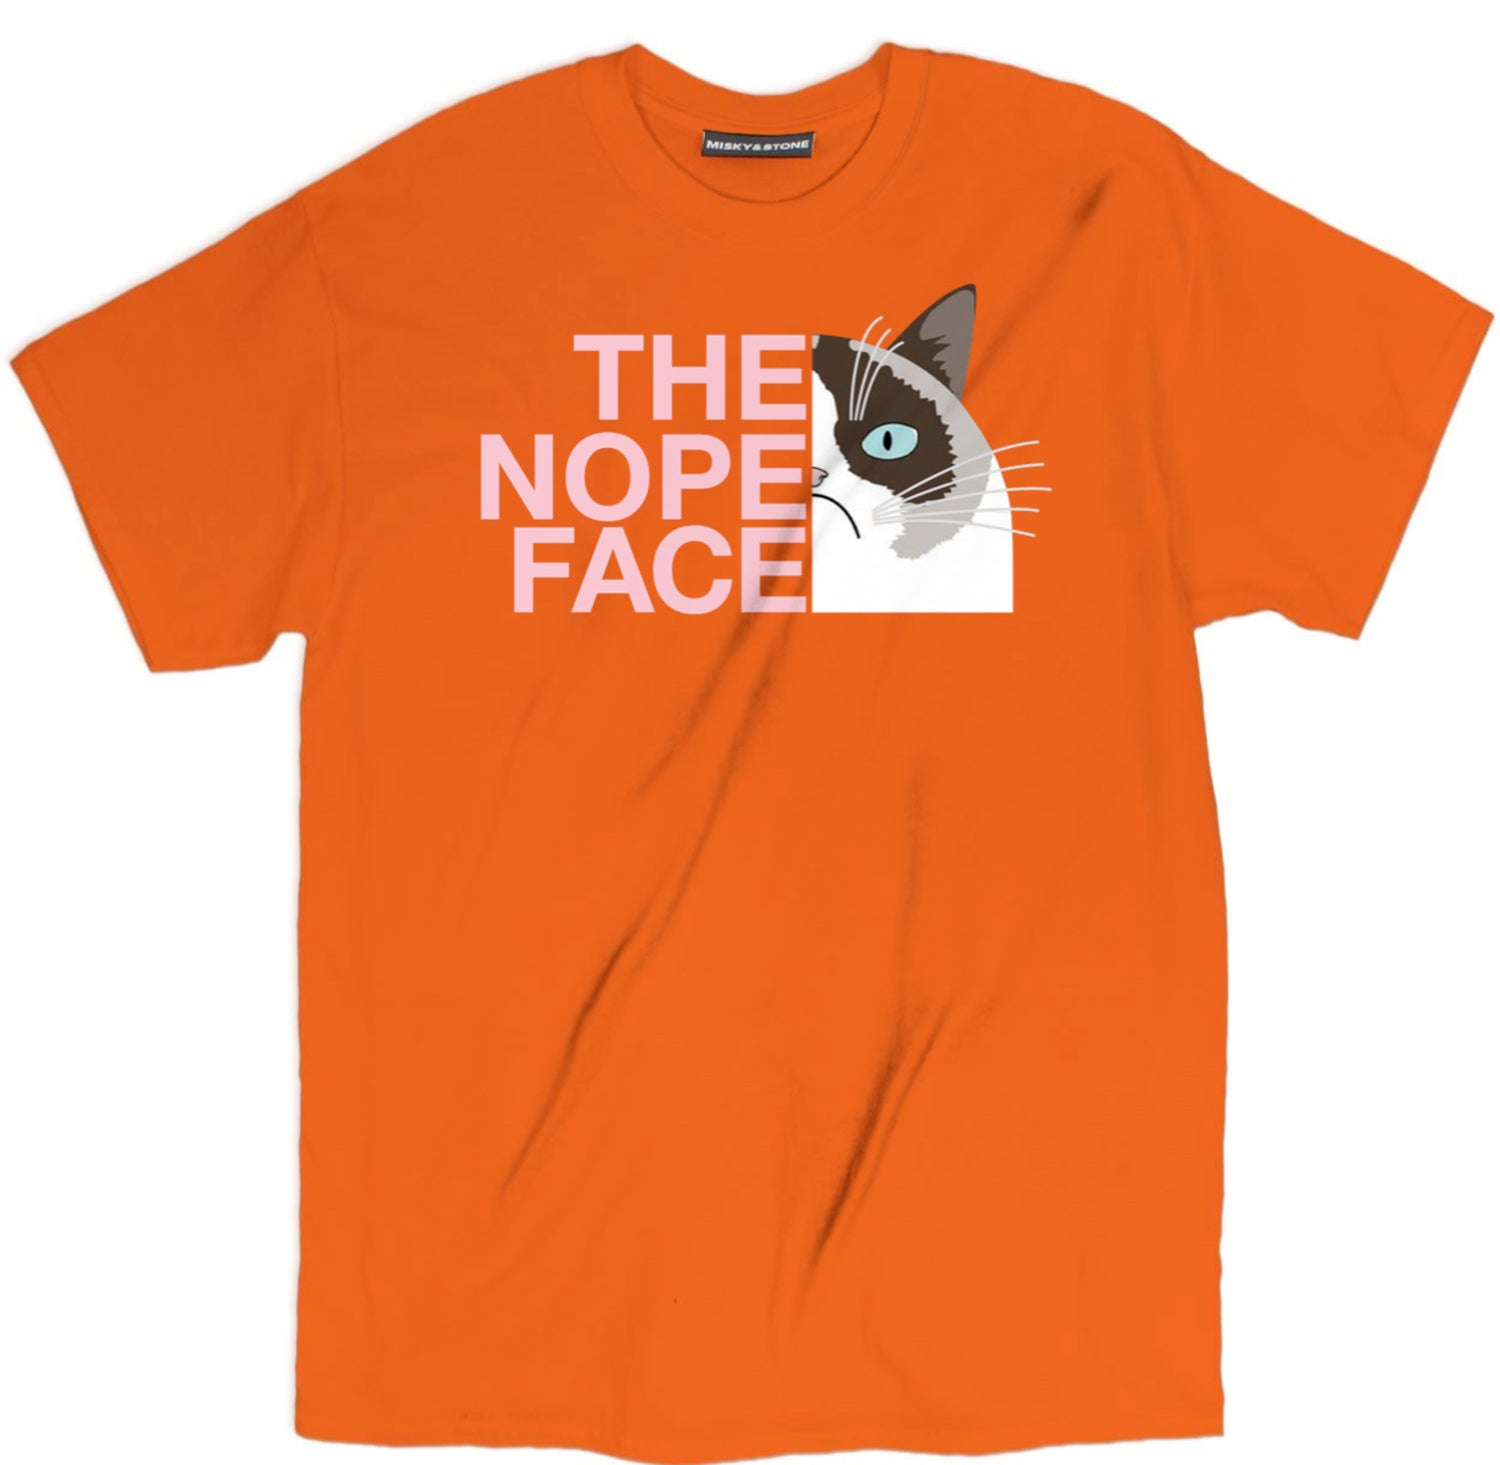 The Nope Face Tee